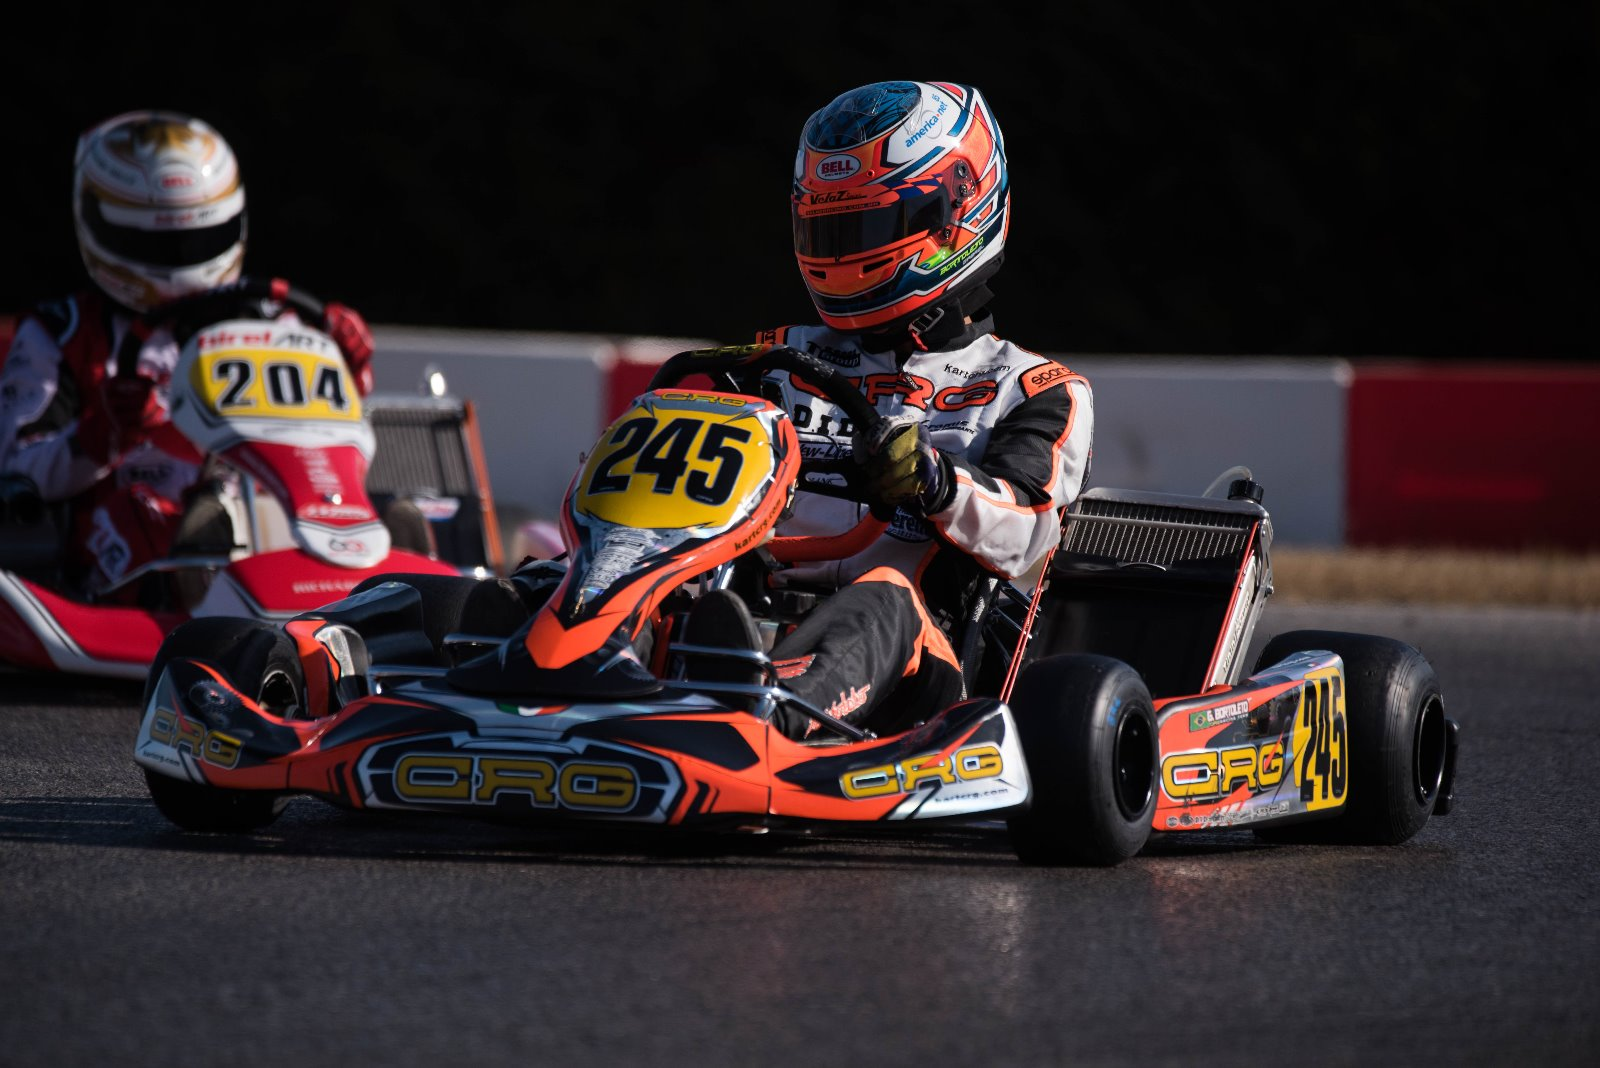 Photo of Kart – Acidente tirou pódio de Gabriel Bortoleto no WSK